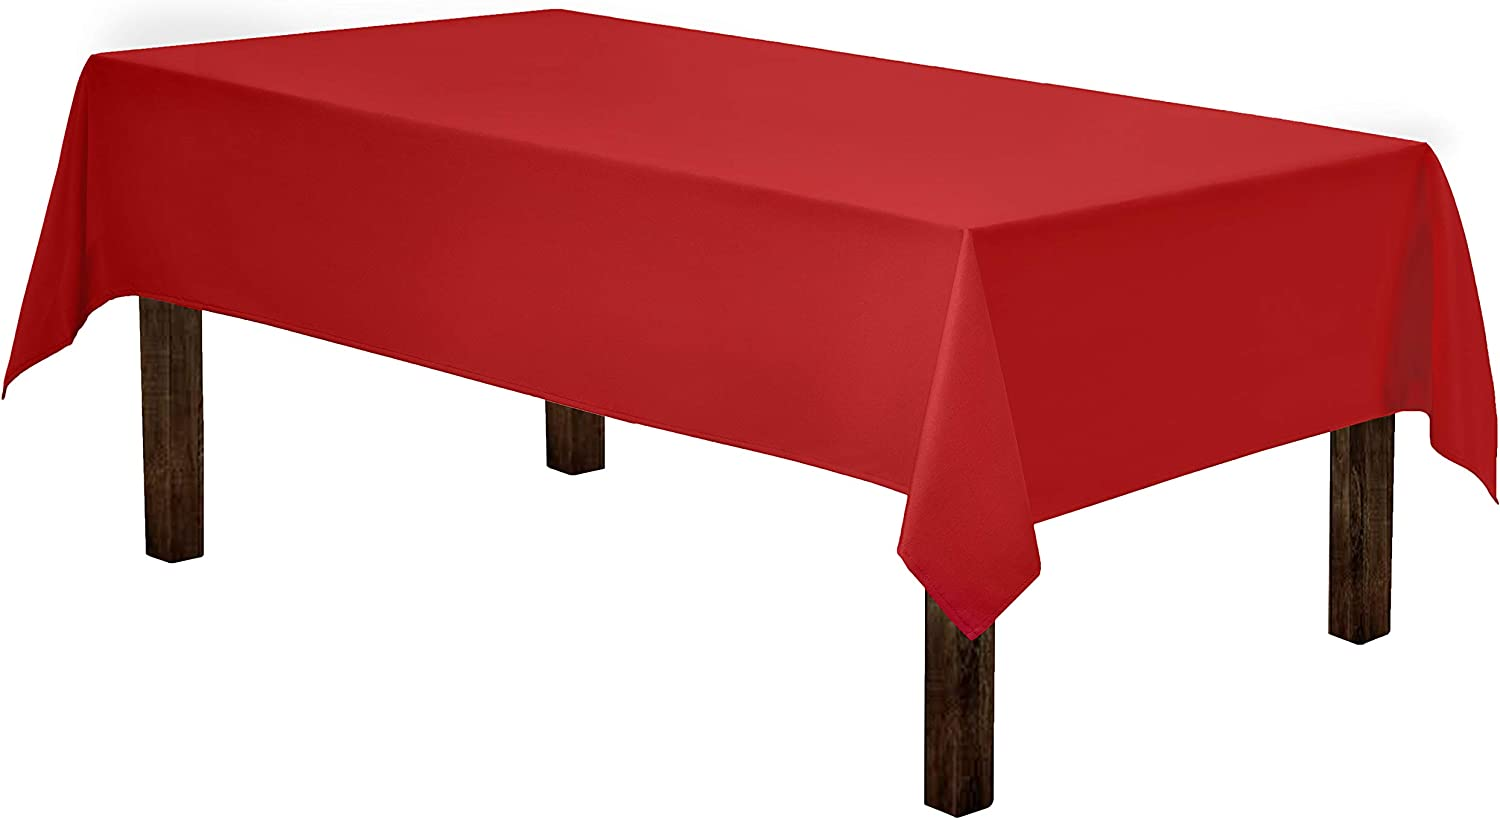 Gee Di Moda Rectangle Tablecloth - 60 x 84 Inch - Red Rectangular Table Cloth for 5 Foot Table in Washable Polyester - Great for Buffet Table, Parties, Holiday Dinner, Wedding & More